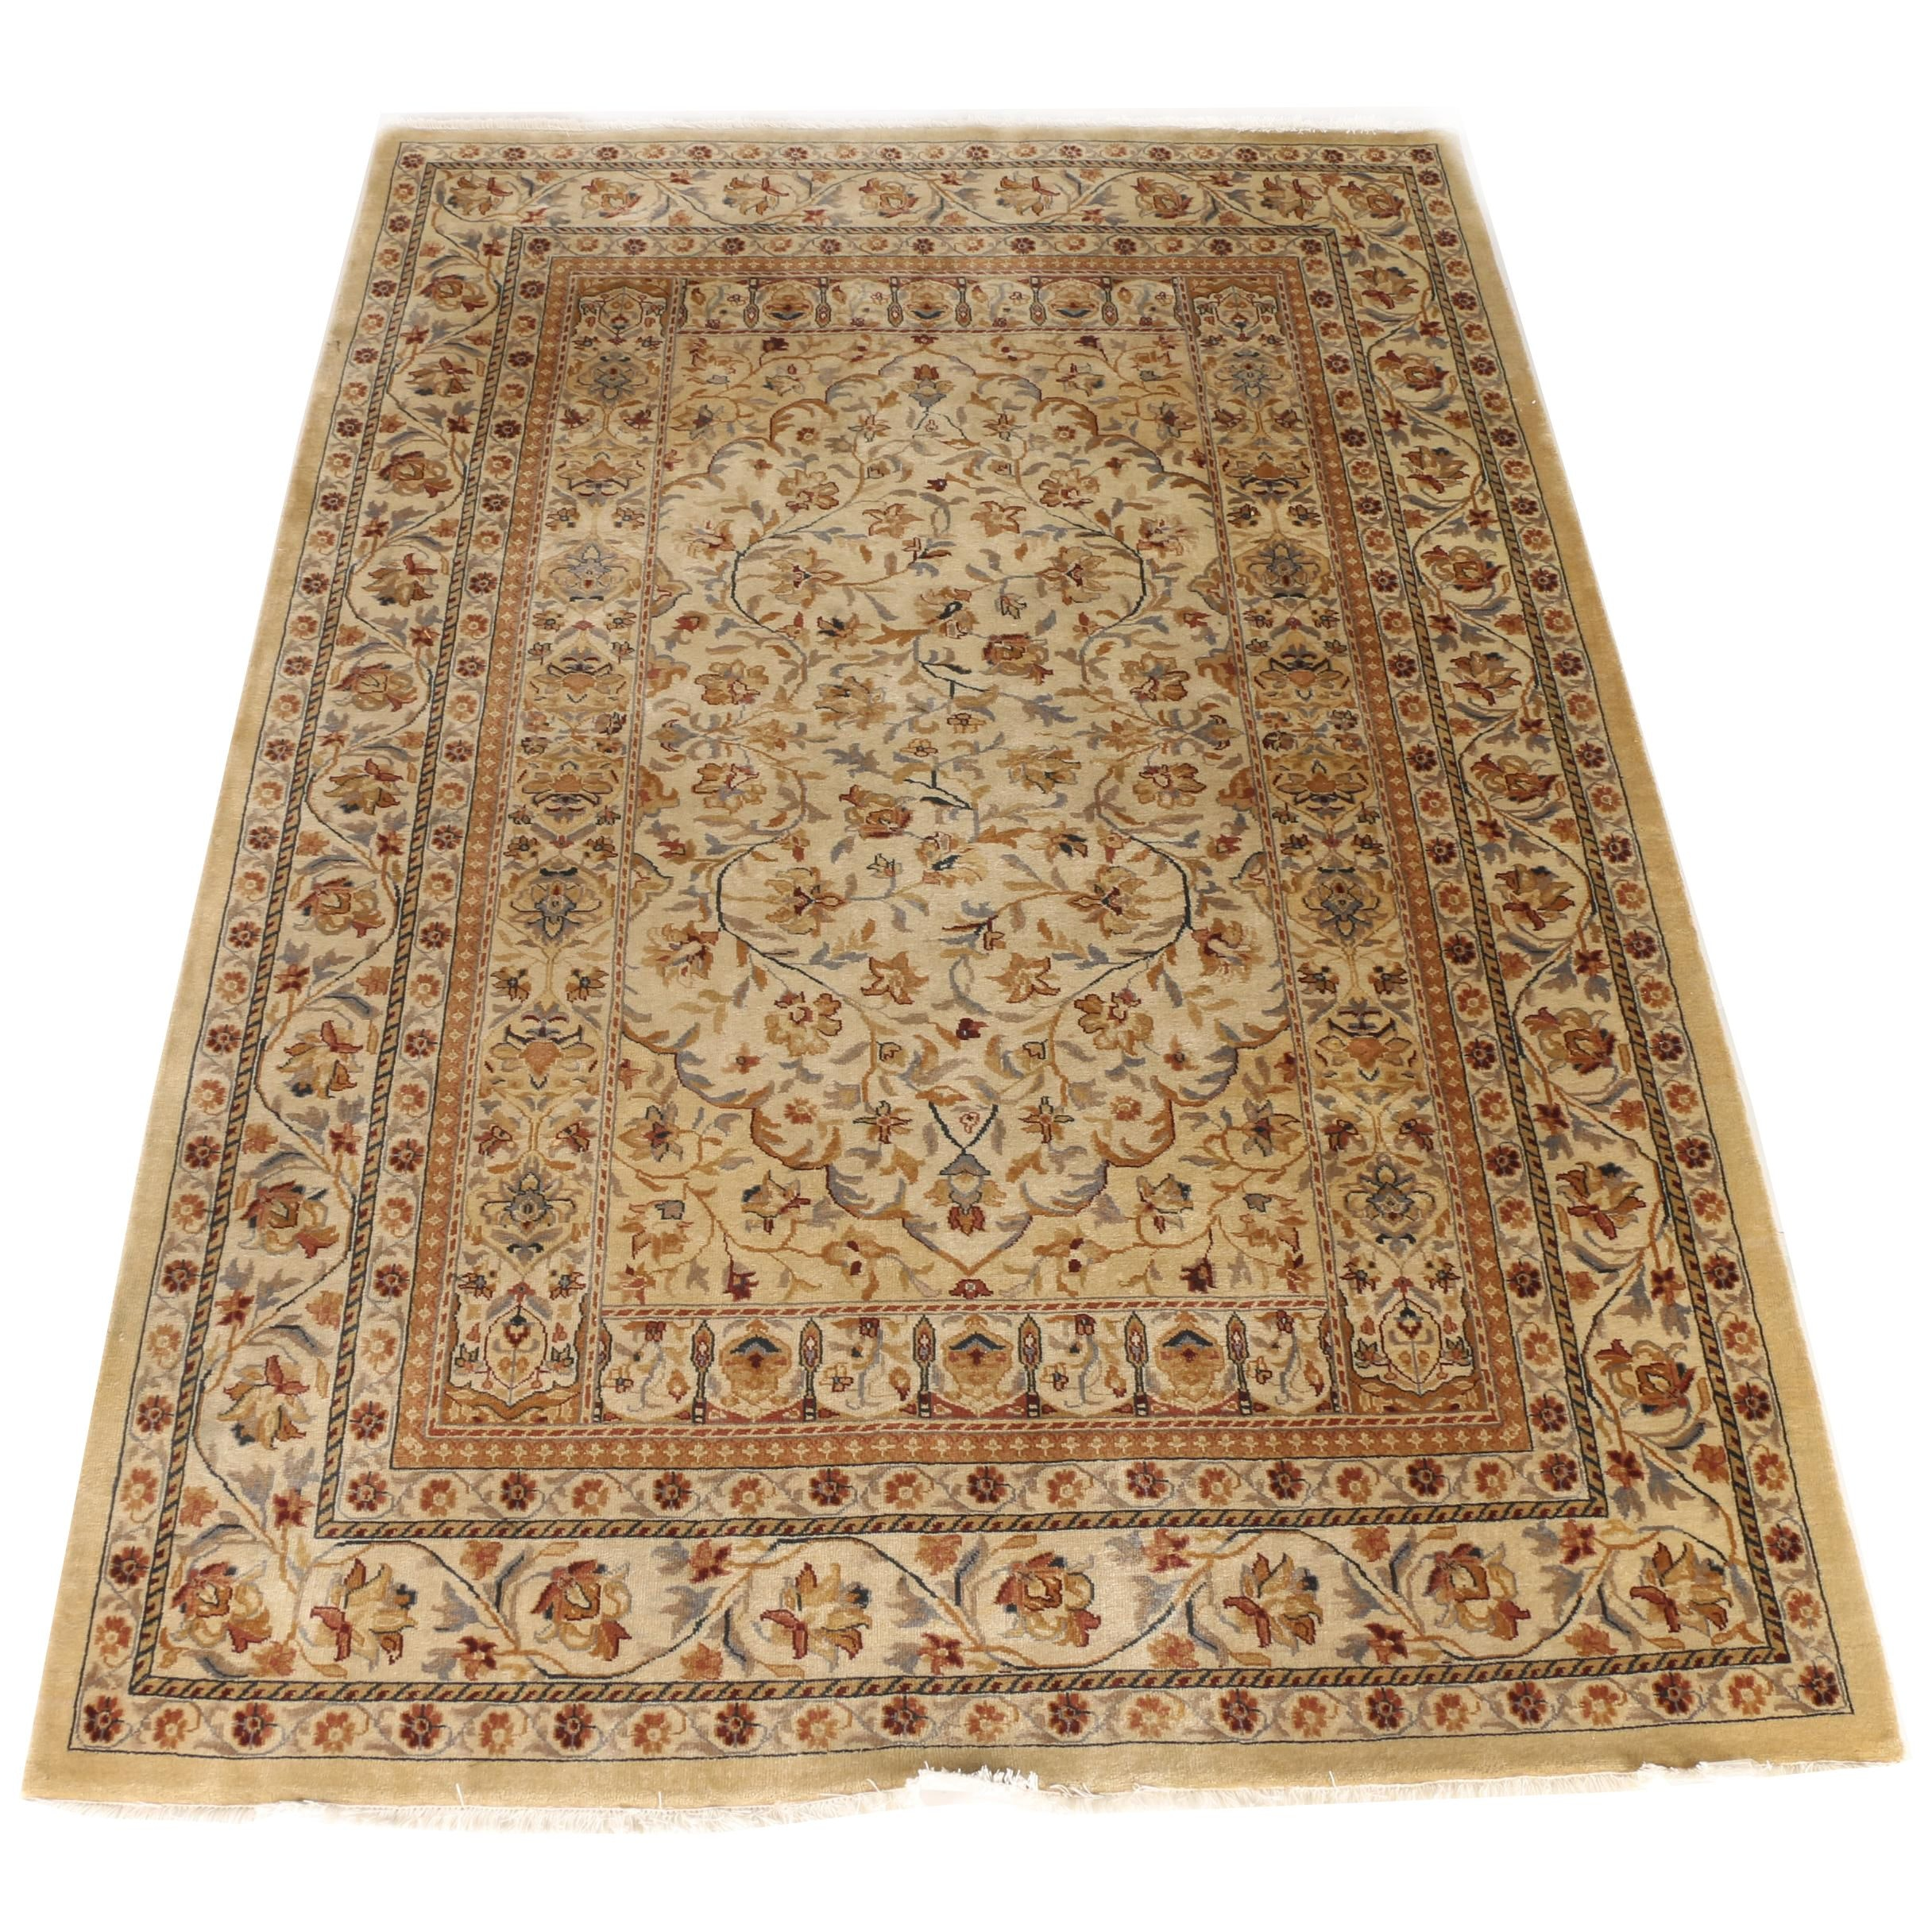 "Hand-Knotted Ethan Allen ""Romantic Taj"" Persian Style Area Rug"